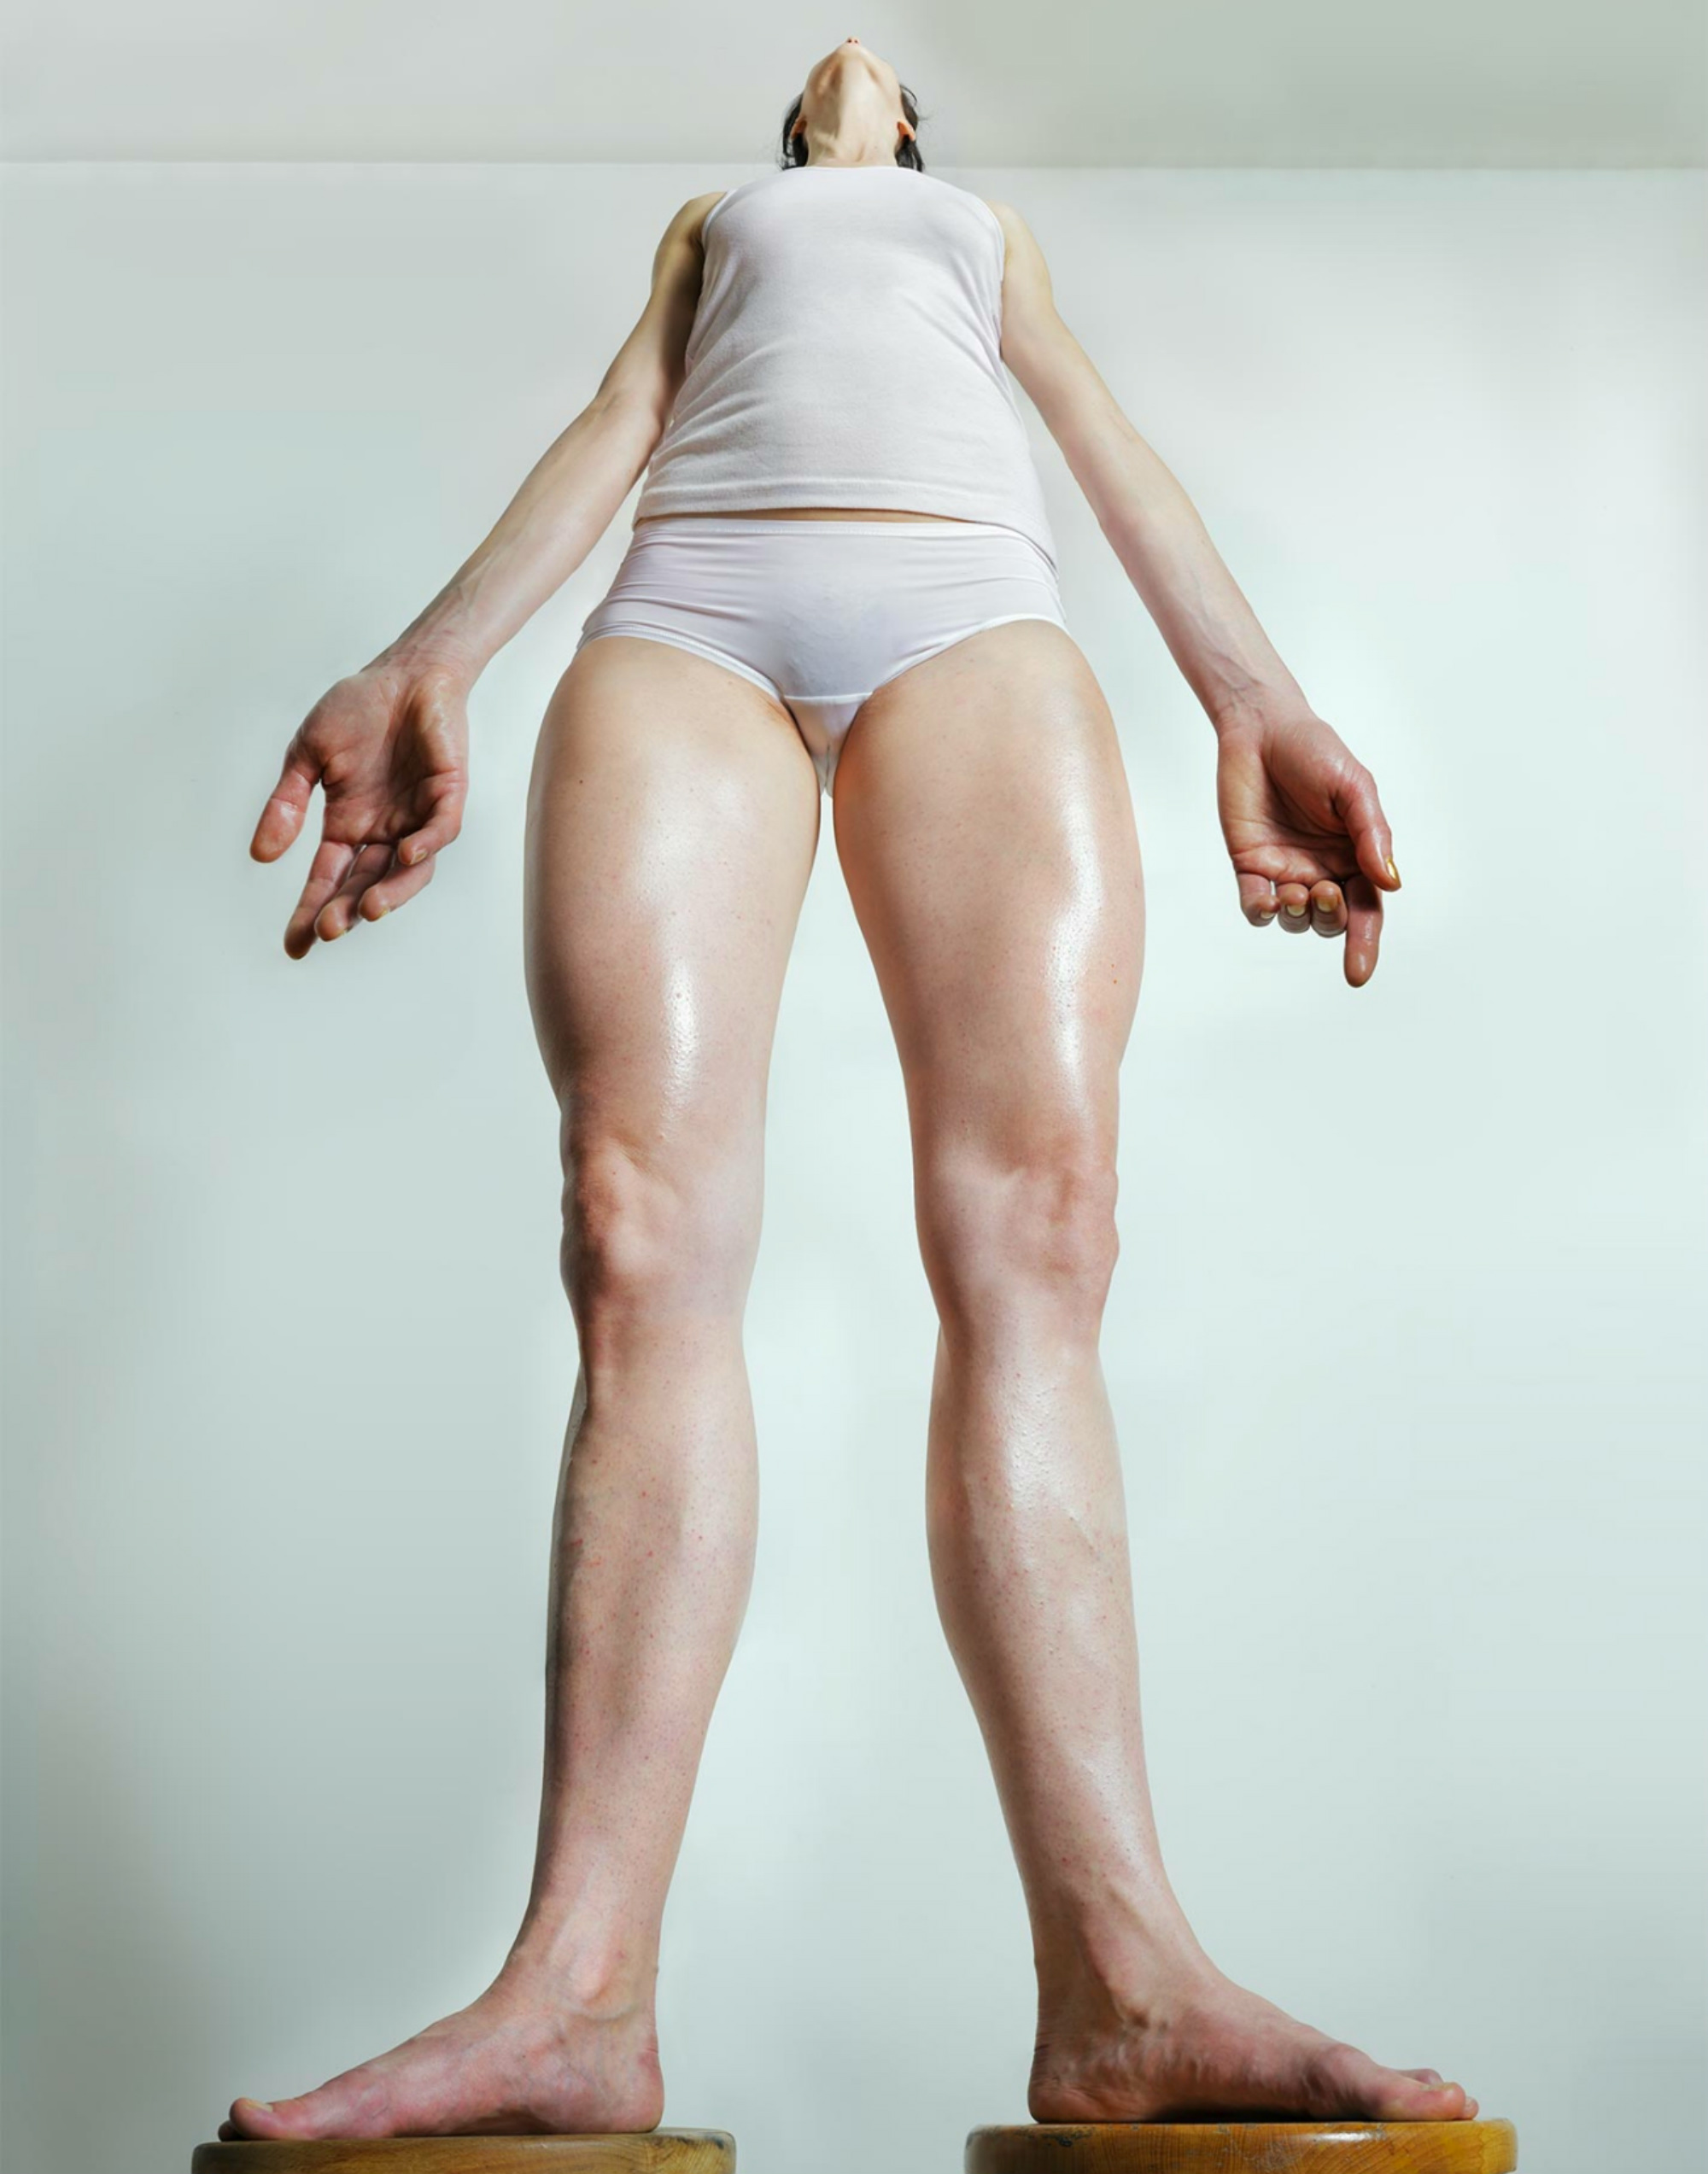 Fisheye Perspectives of the Body by Roger Weiss